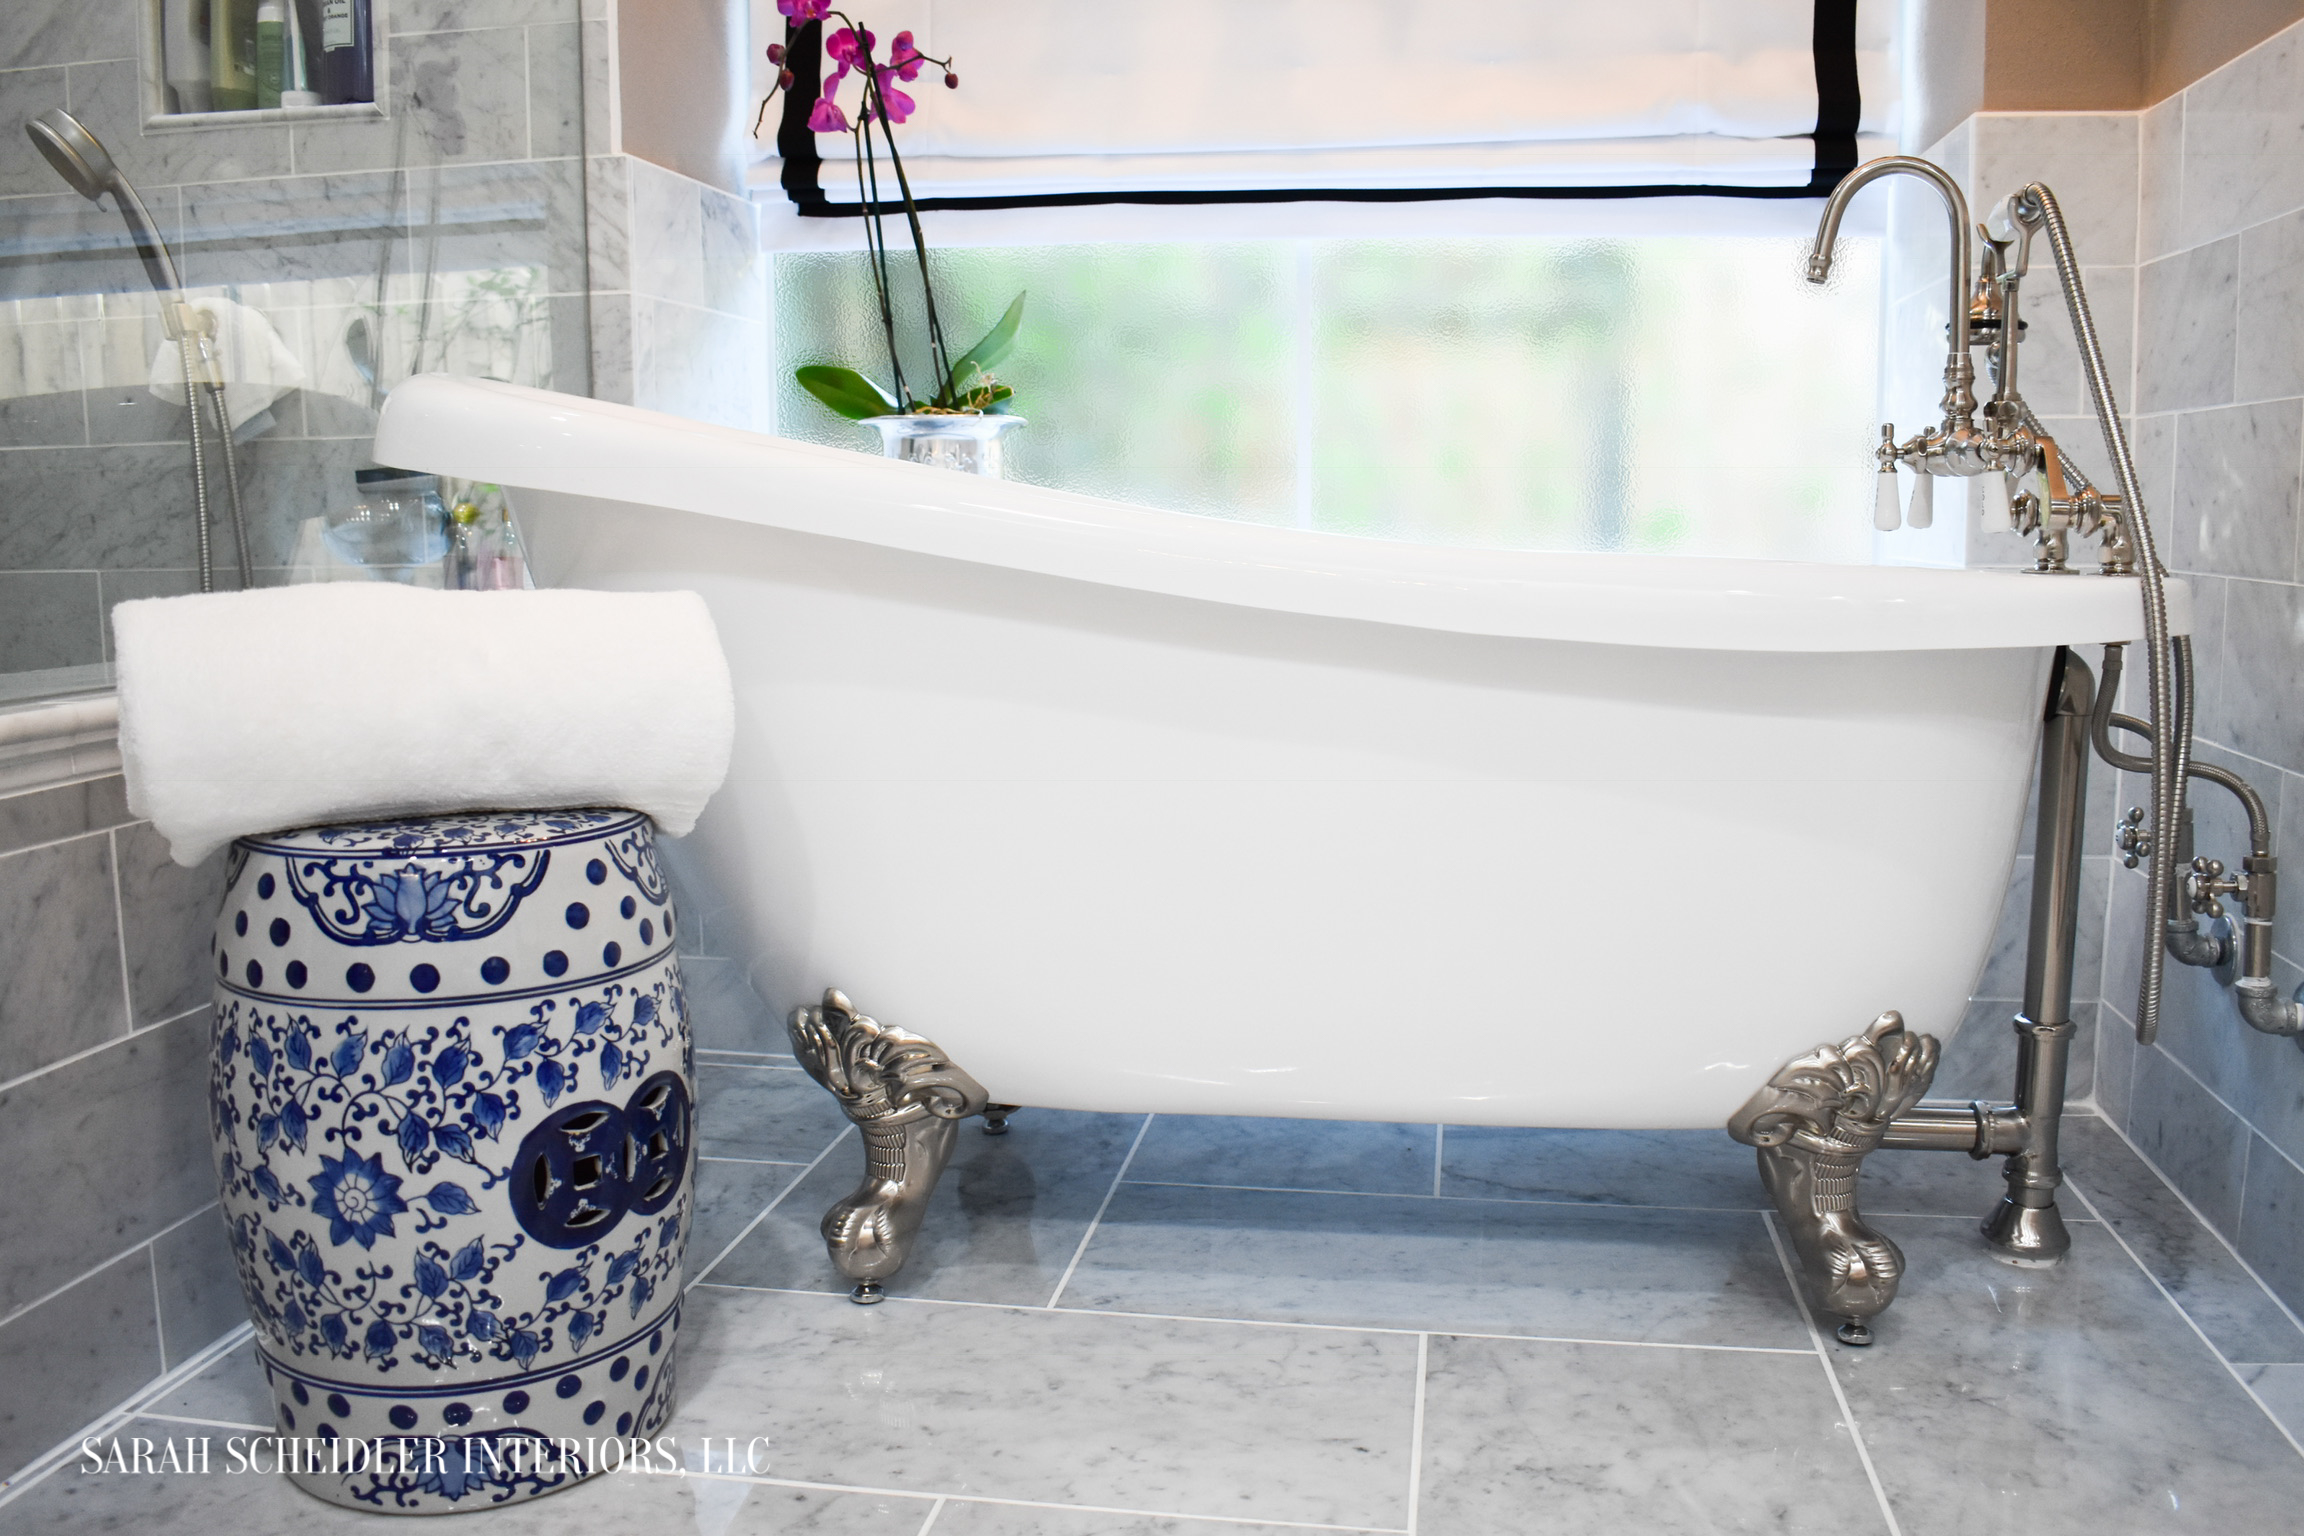 Clawfoot Tub in White and Grey Marble Primary Bathroom with Blue and White Decorative Accent Stool